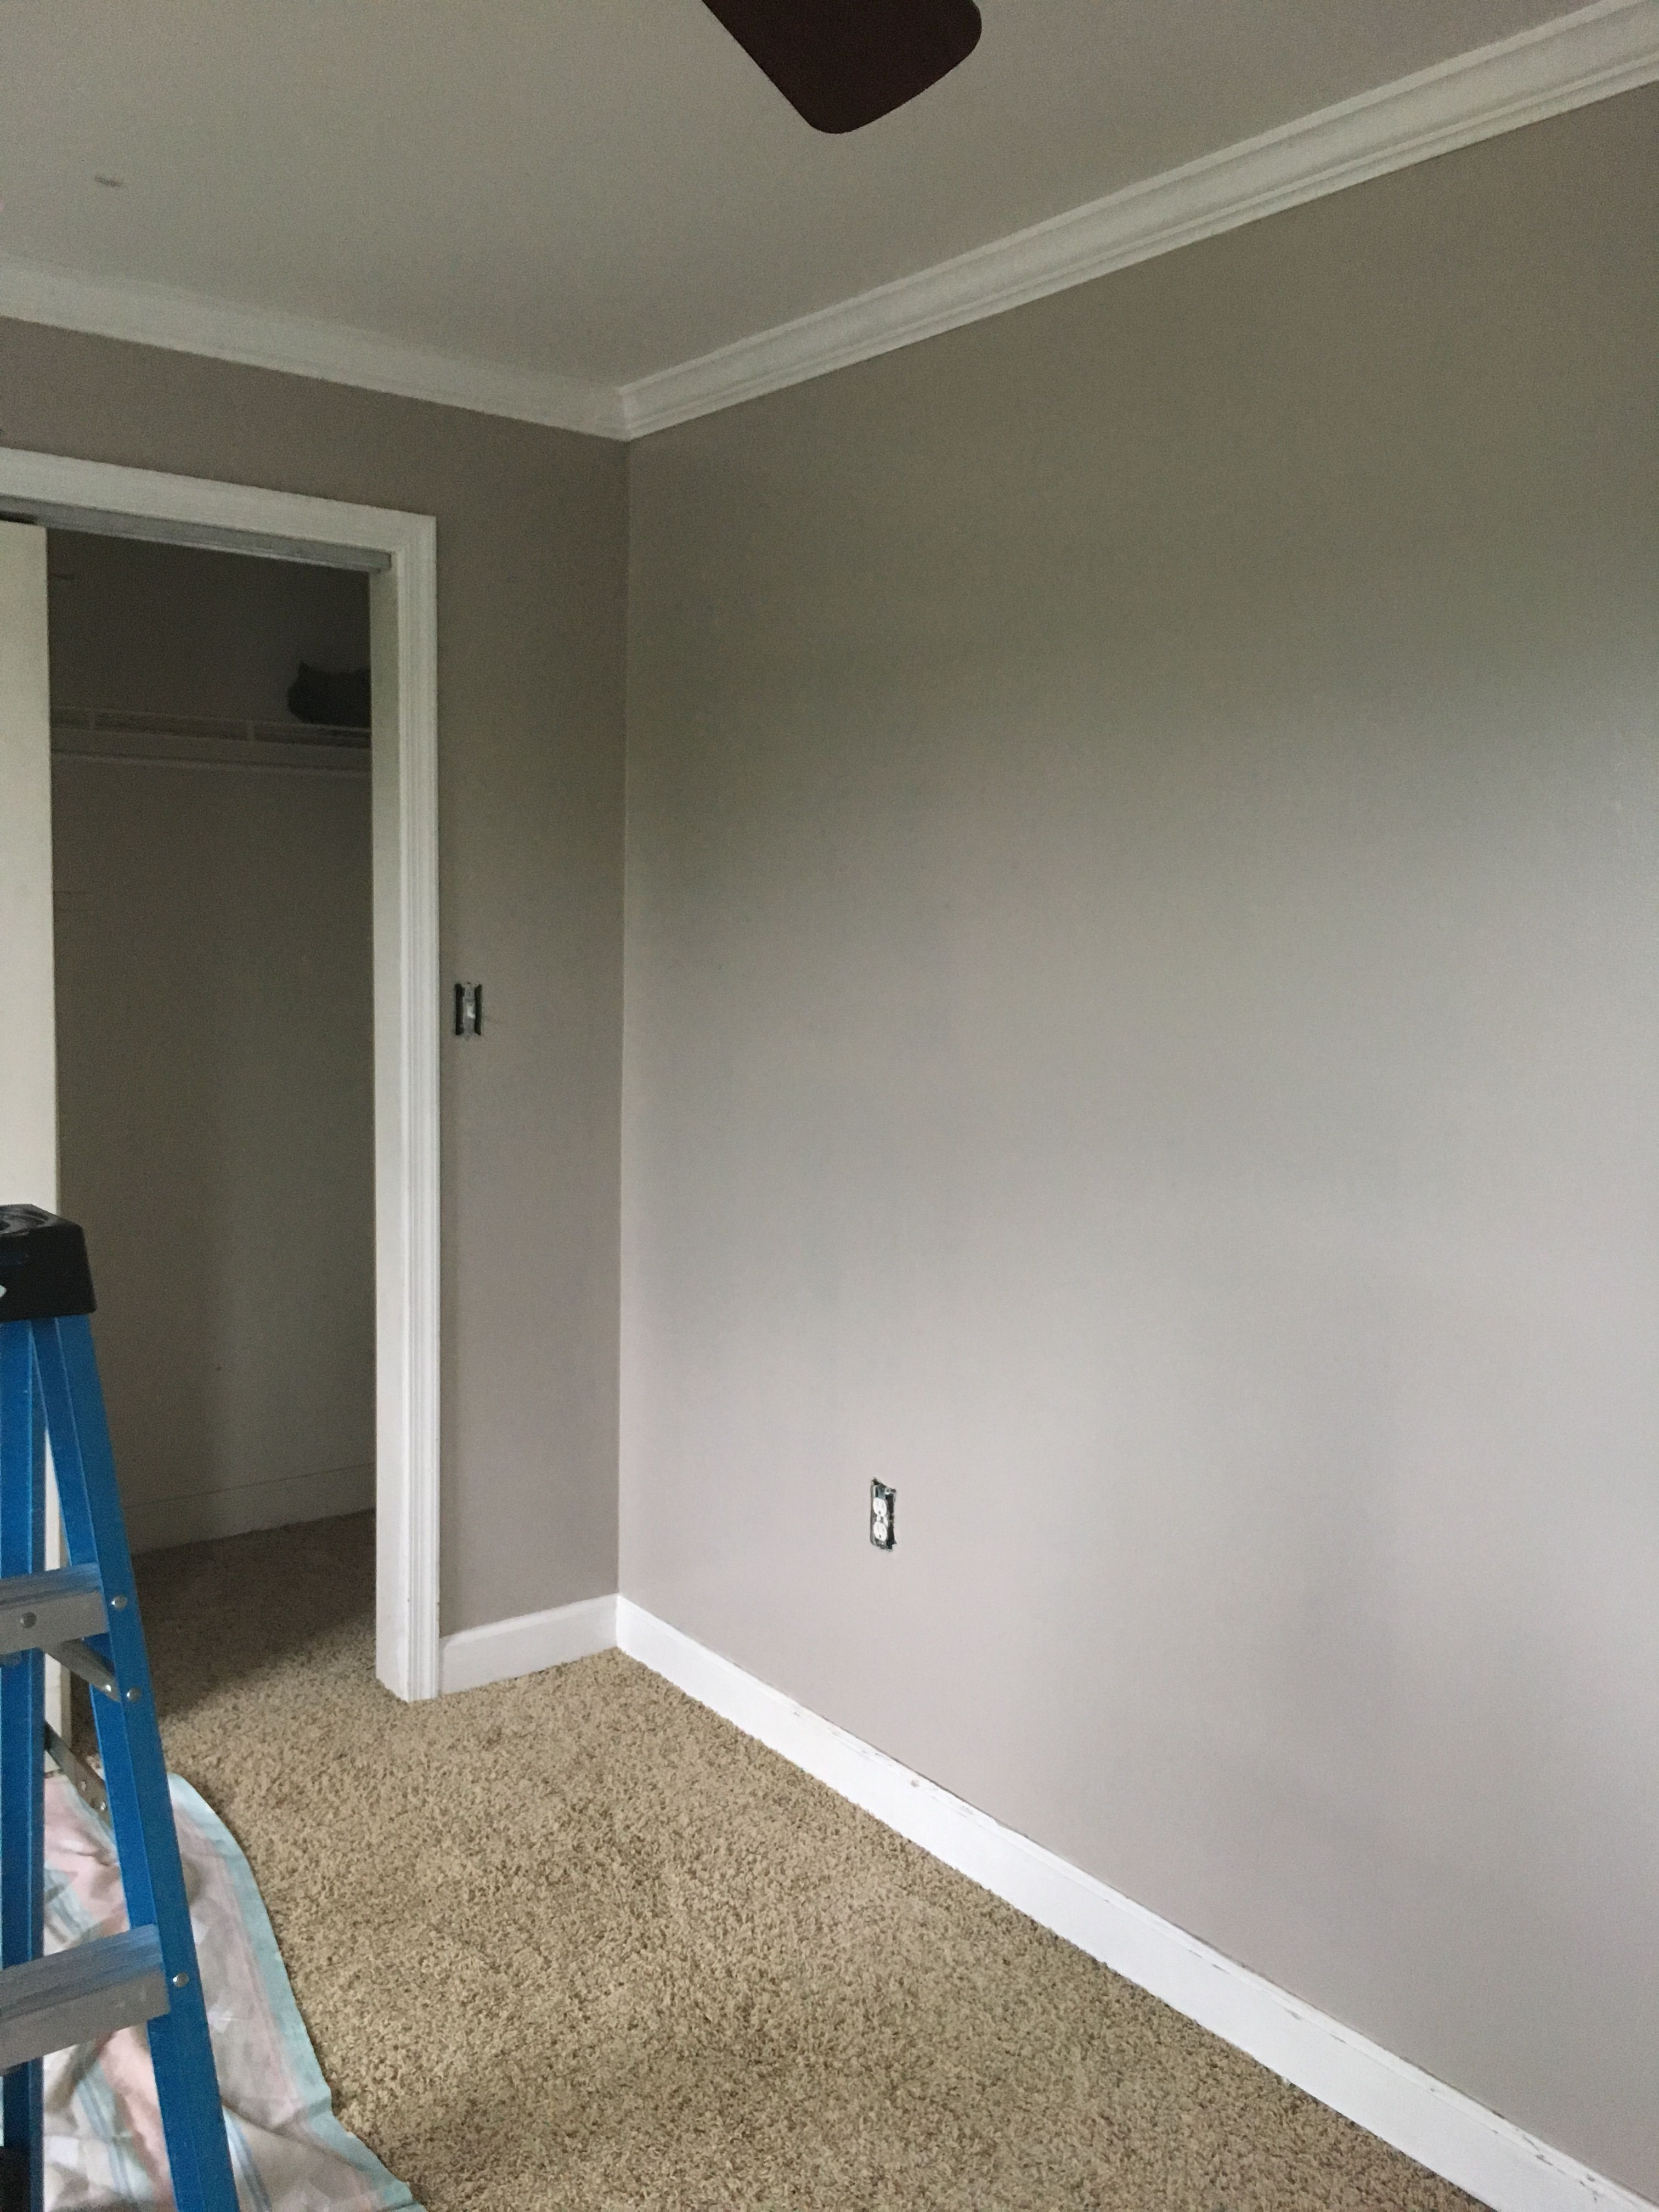 Basket beige sherwin williams - Sherwin Williams Adley Grey I Love This Color For Greige Paint